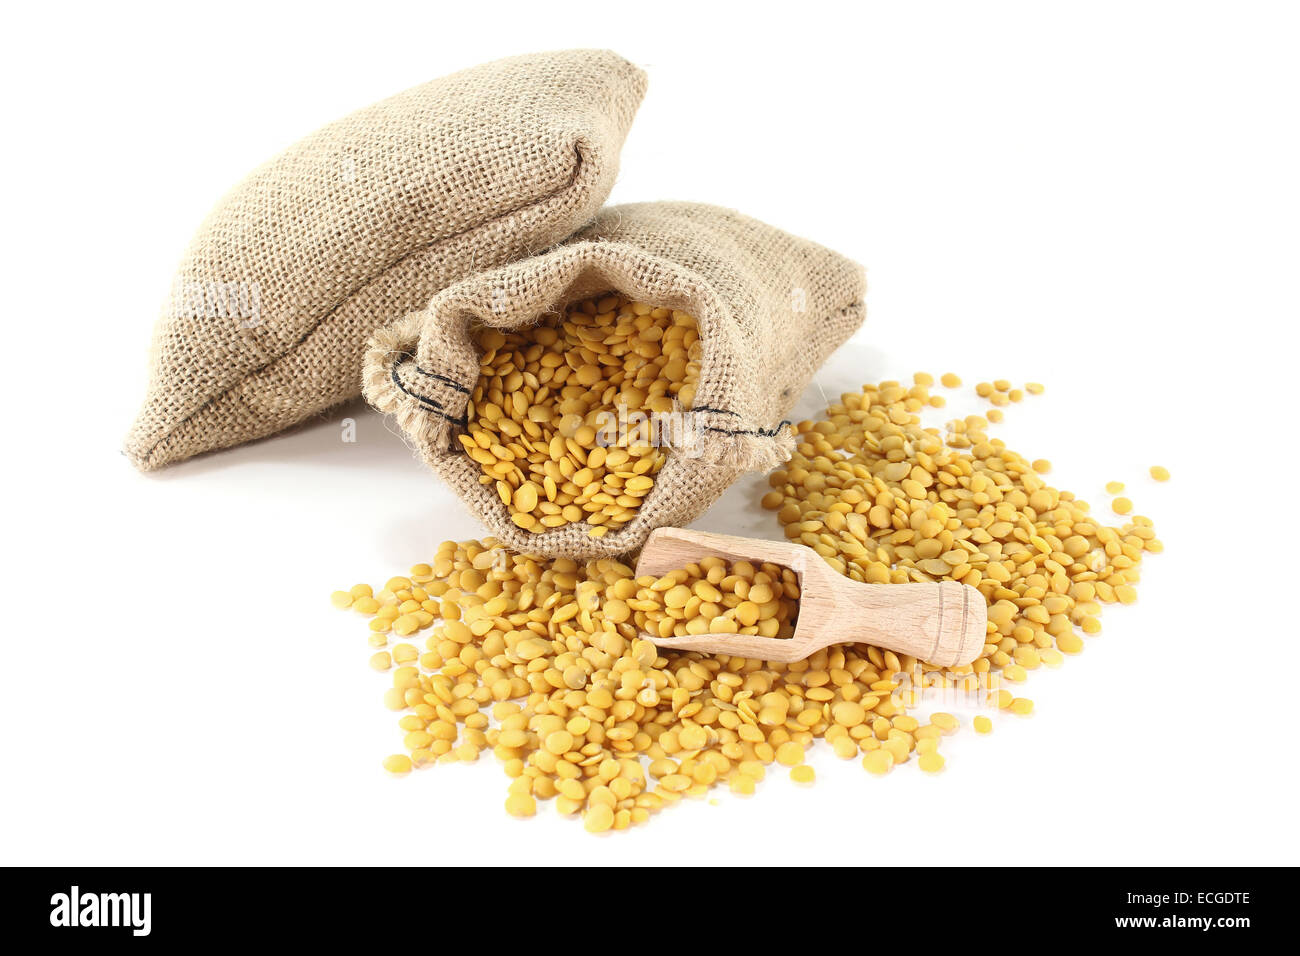 dried yellow lentils in sacks with bushels on a light background - Stock Image